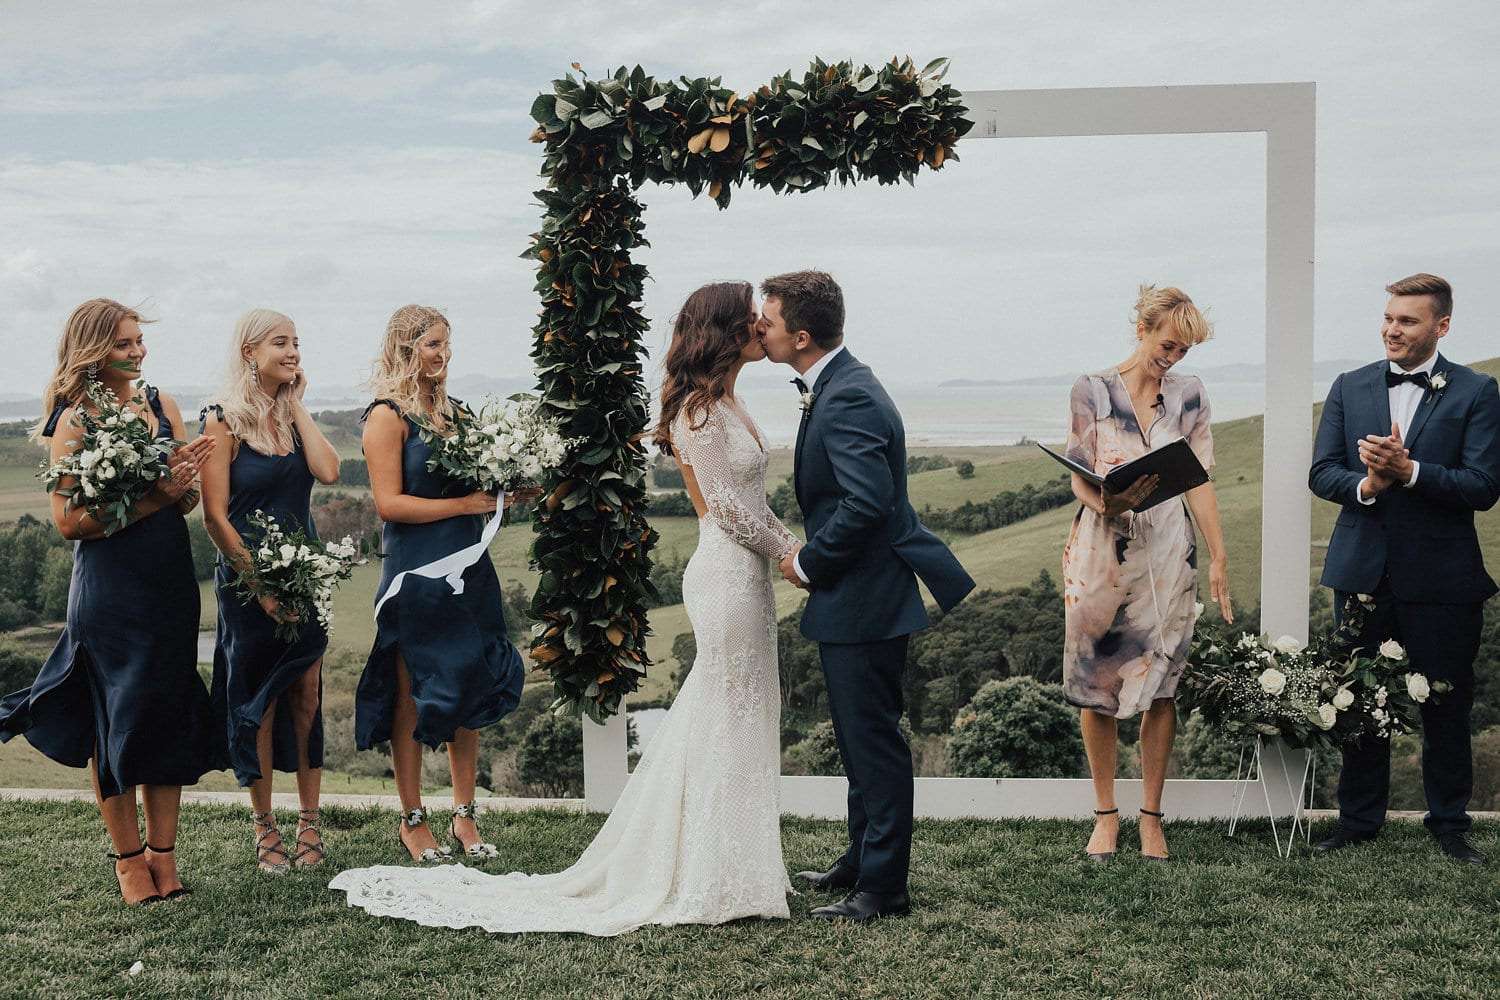 Real Weddings | Vinka Design | Real Brides Wearing Vinka Gowns | Nicole and Hayden kiss under arch at wedding ceremony